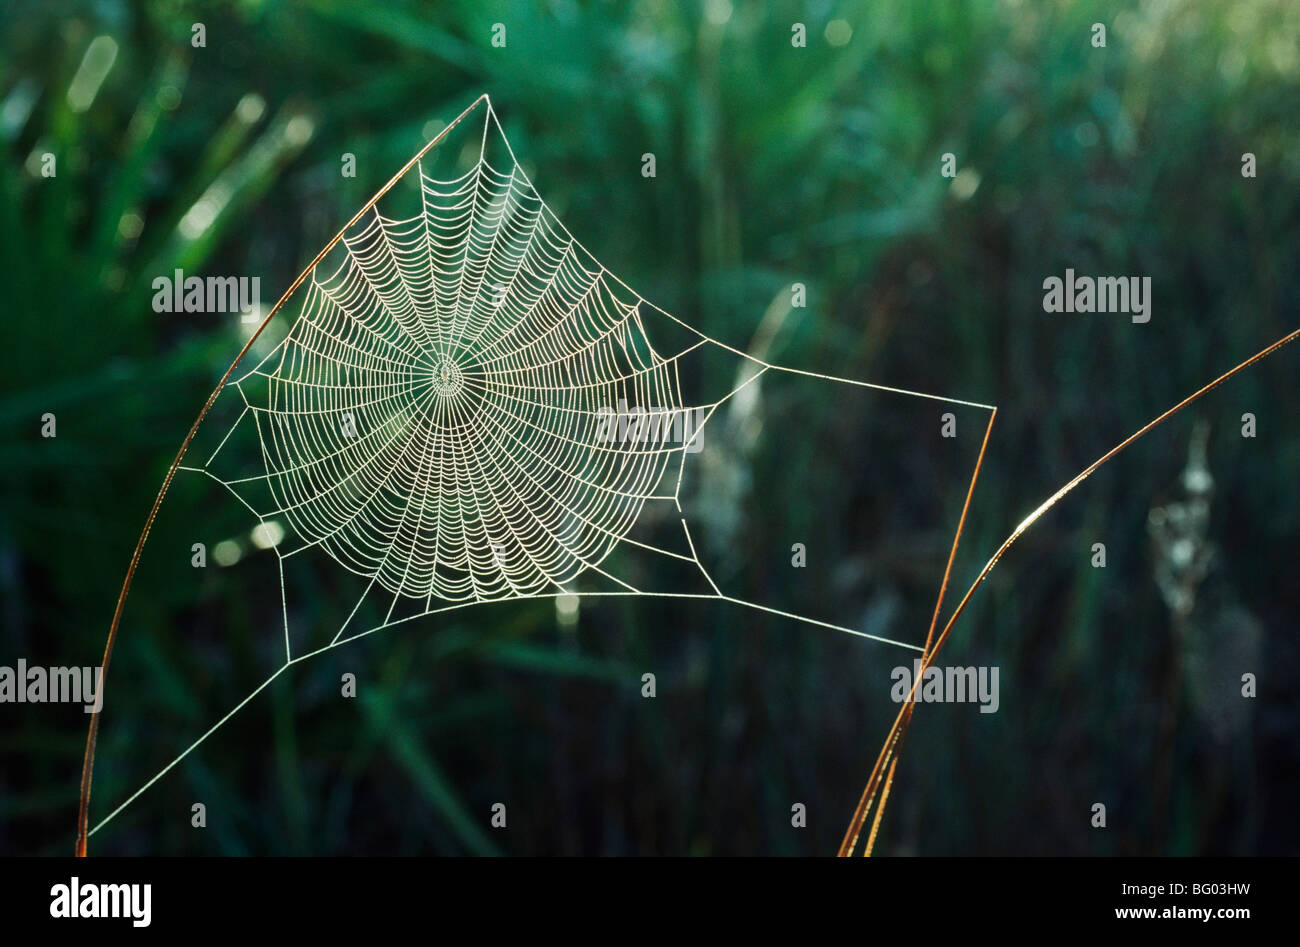 Orb web covered with dew, New Mexico, USA - Stock Image